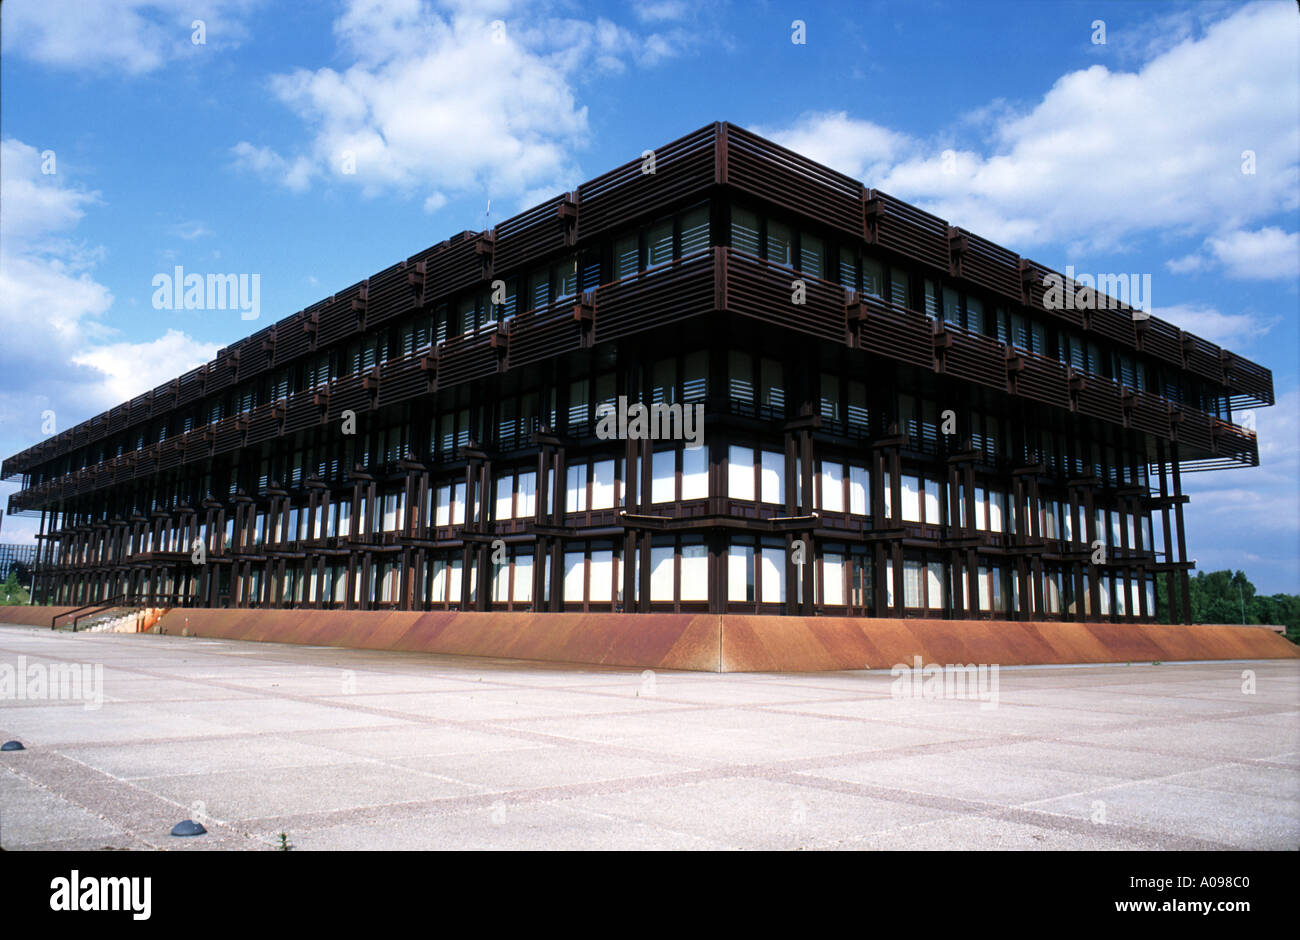 Old Building of the European Court of Justice in Luxemburg - Stock Image